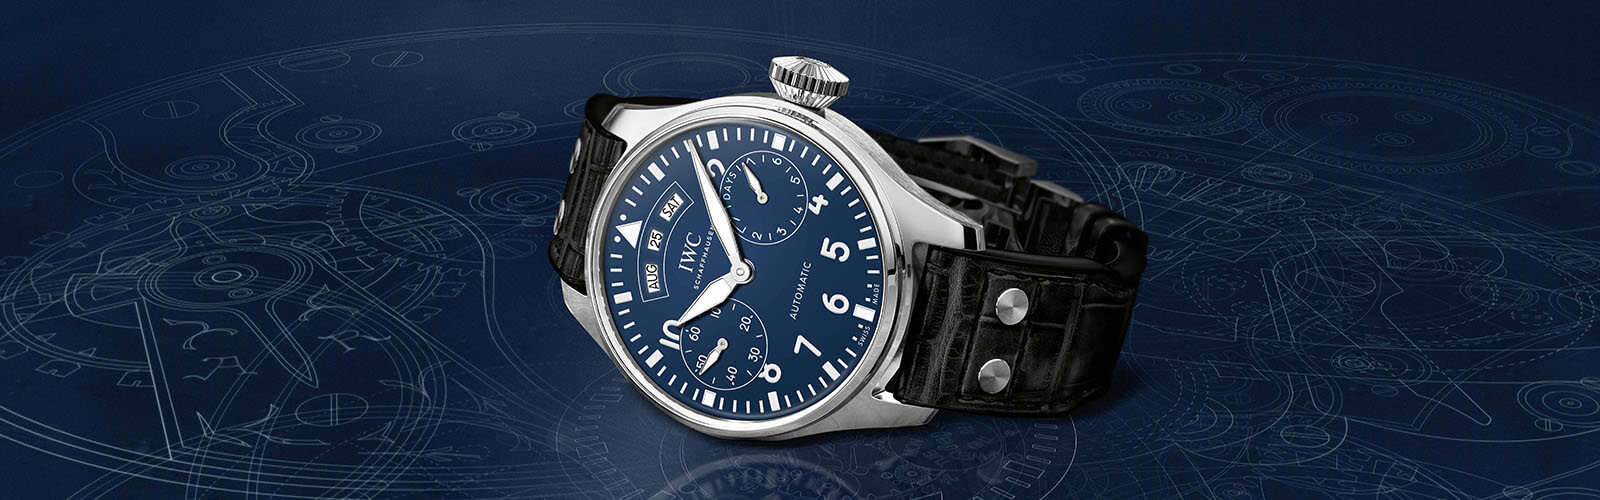 IWC SCHAFFHAUSEN Big Pilot's Watch Edition 150 Years_COVER3